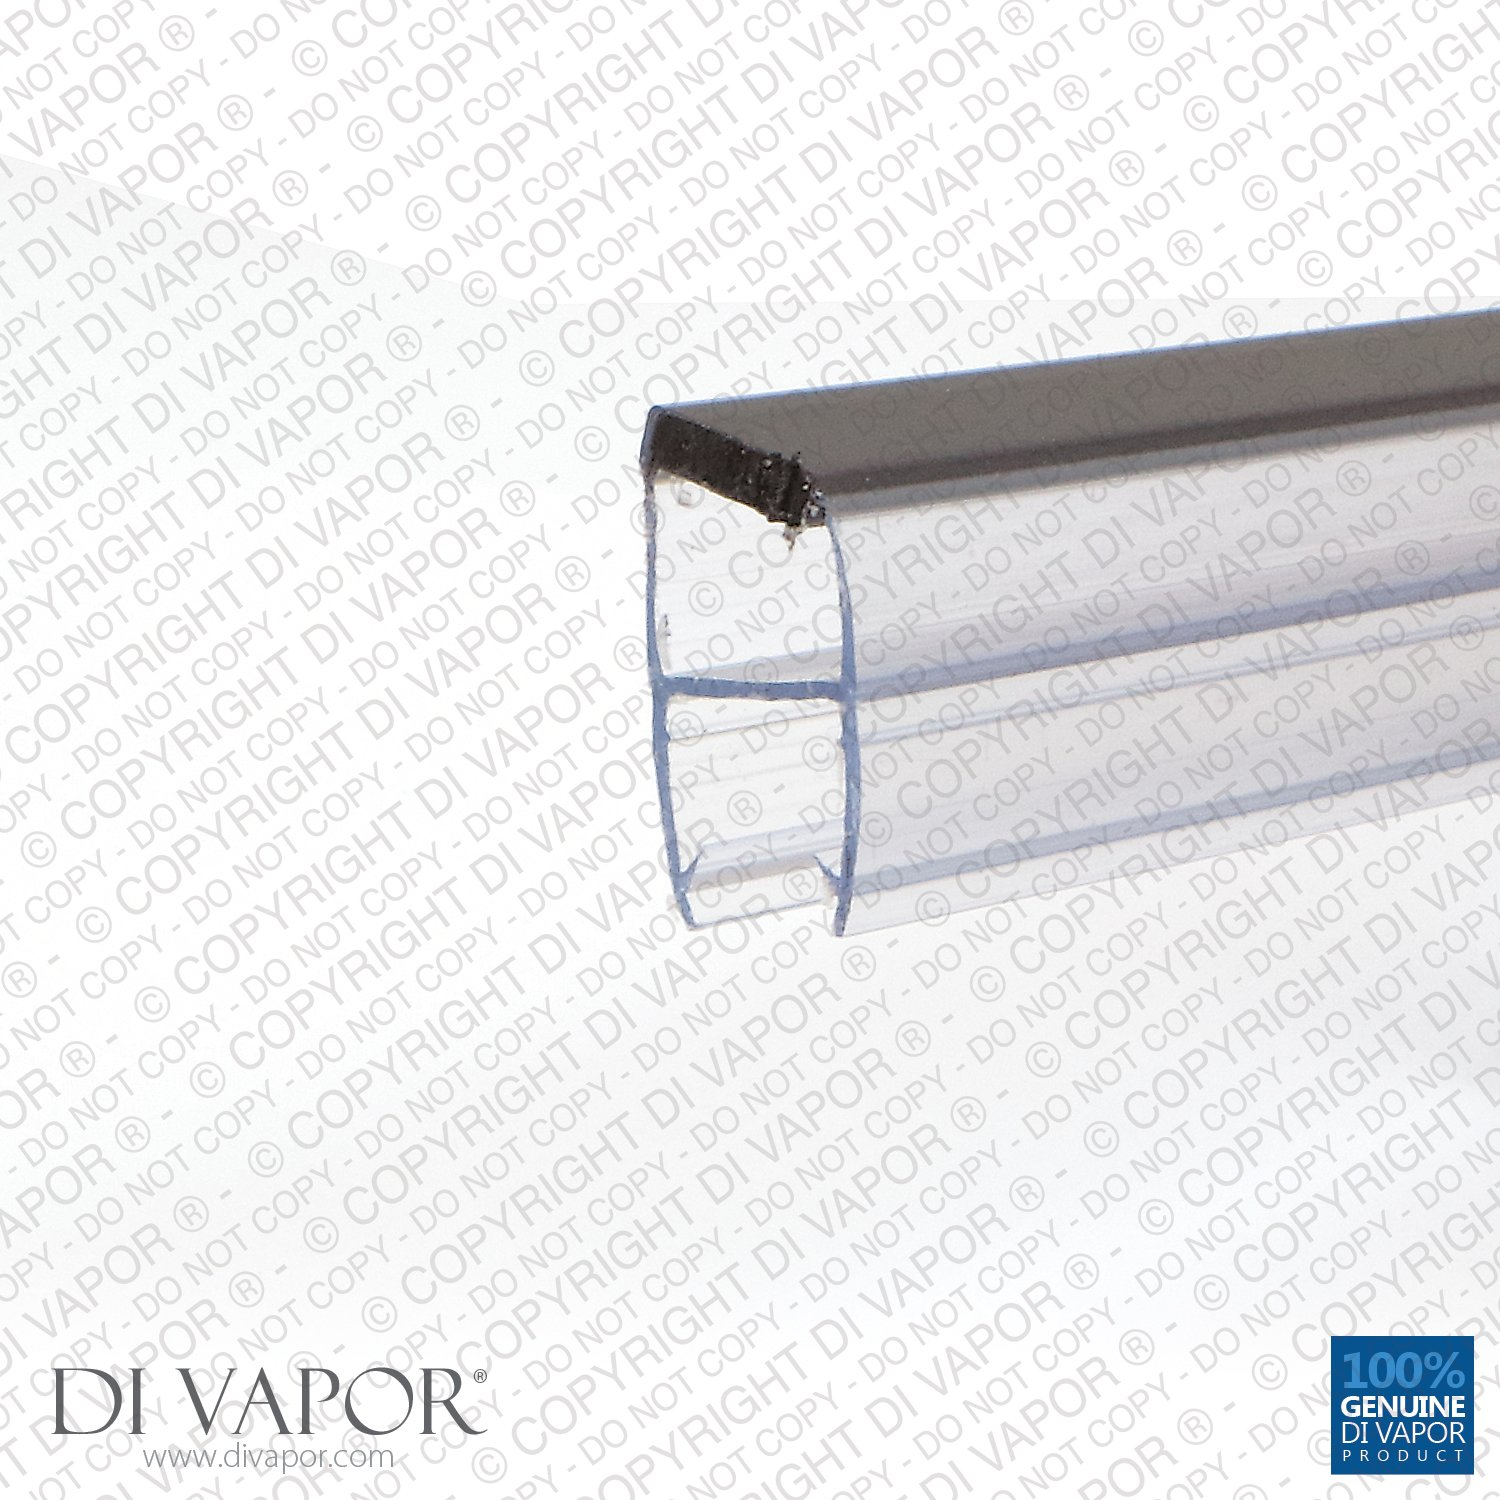 Di Vapor (R) Angled Magnetic Shower Door Seal | 4-6mm/8mm/10mm Glass | 85cm/200c (Glass Thickness: 4-6mm, Seal Length: 2m)